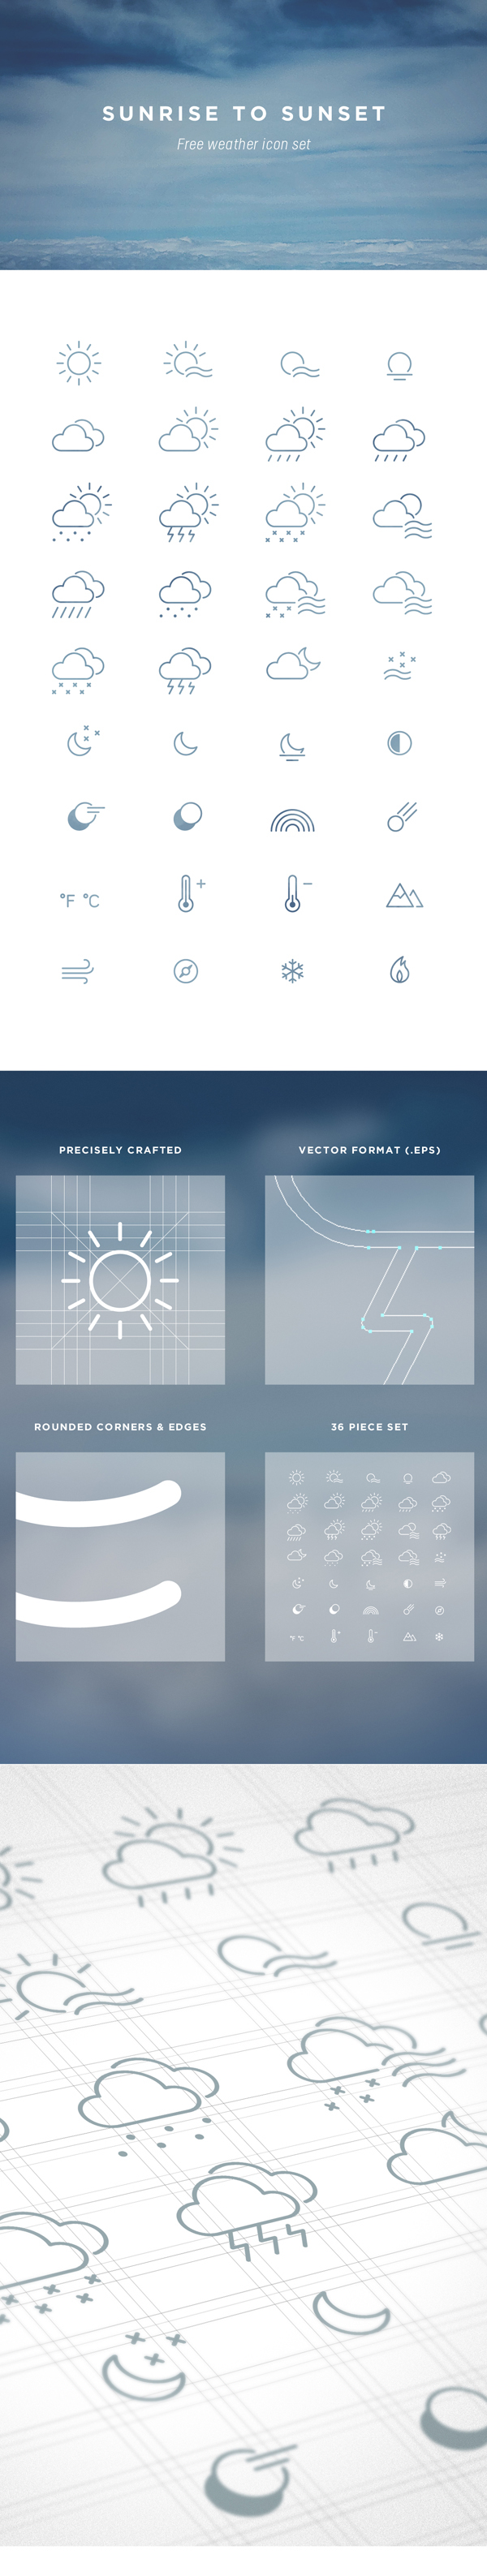 Weather icons pack on Behance